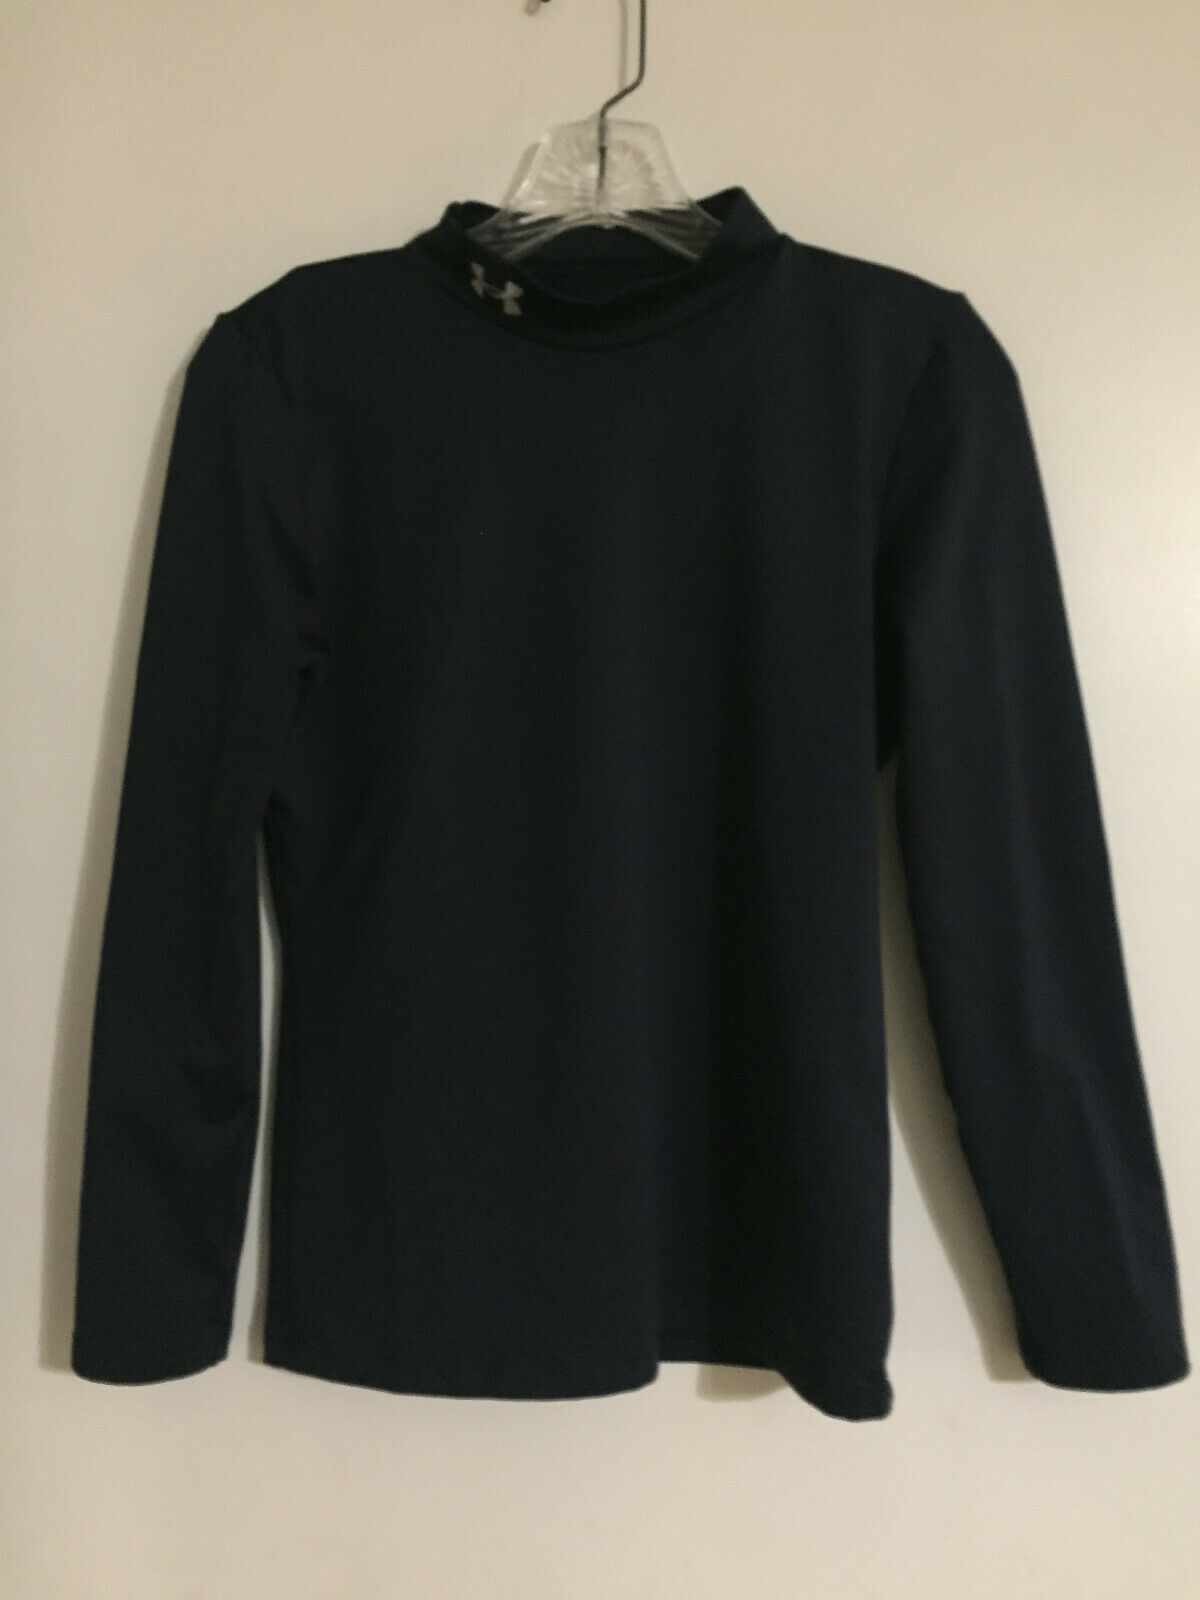 Boys Under Armour Long Sleeve Shirt-Navy YXL  - $1.99